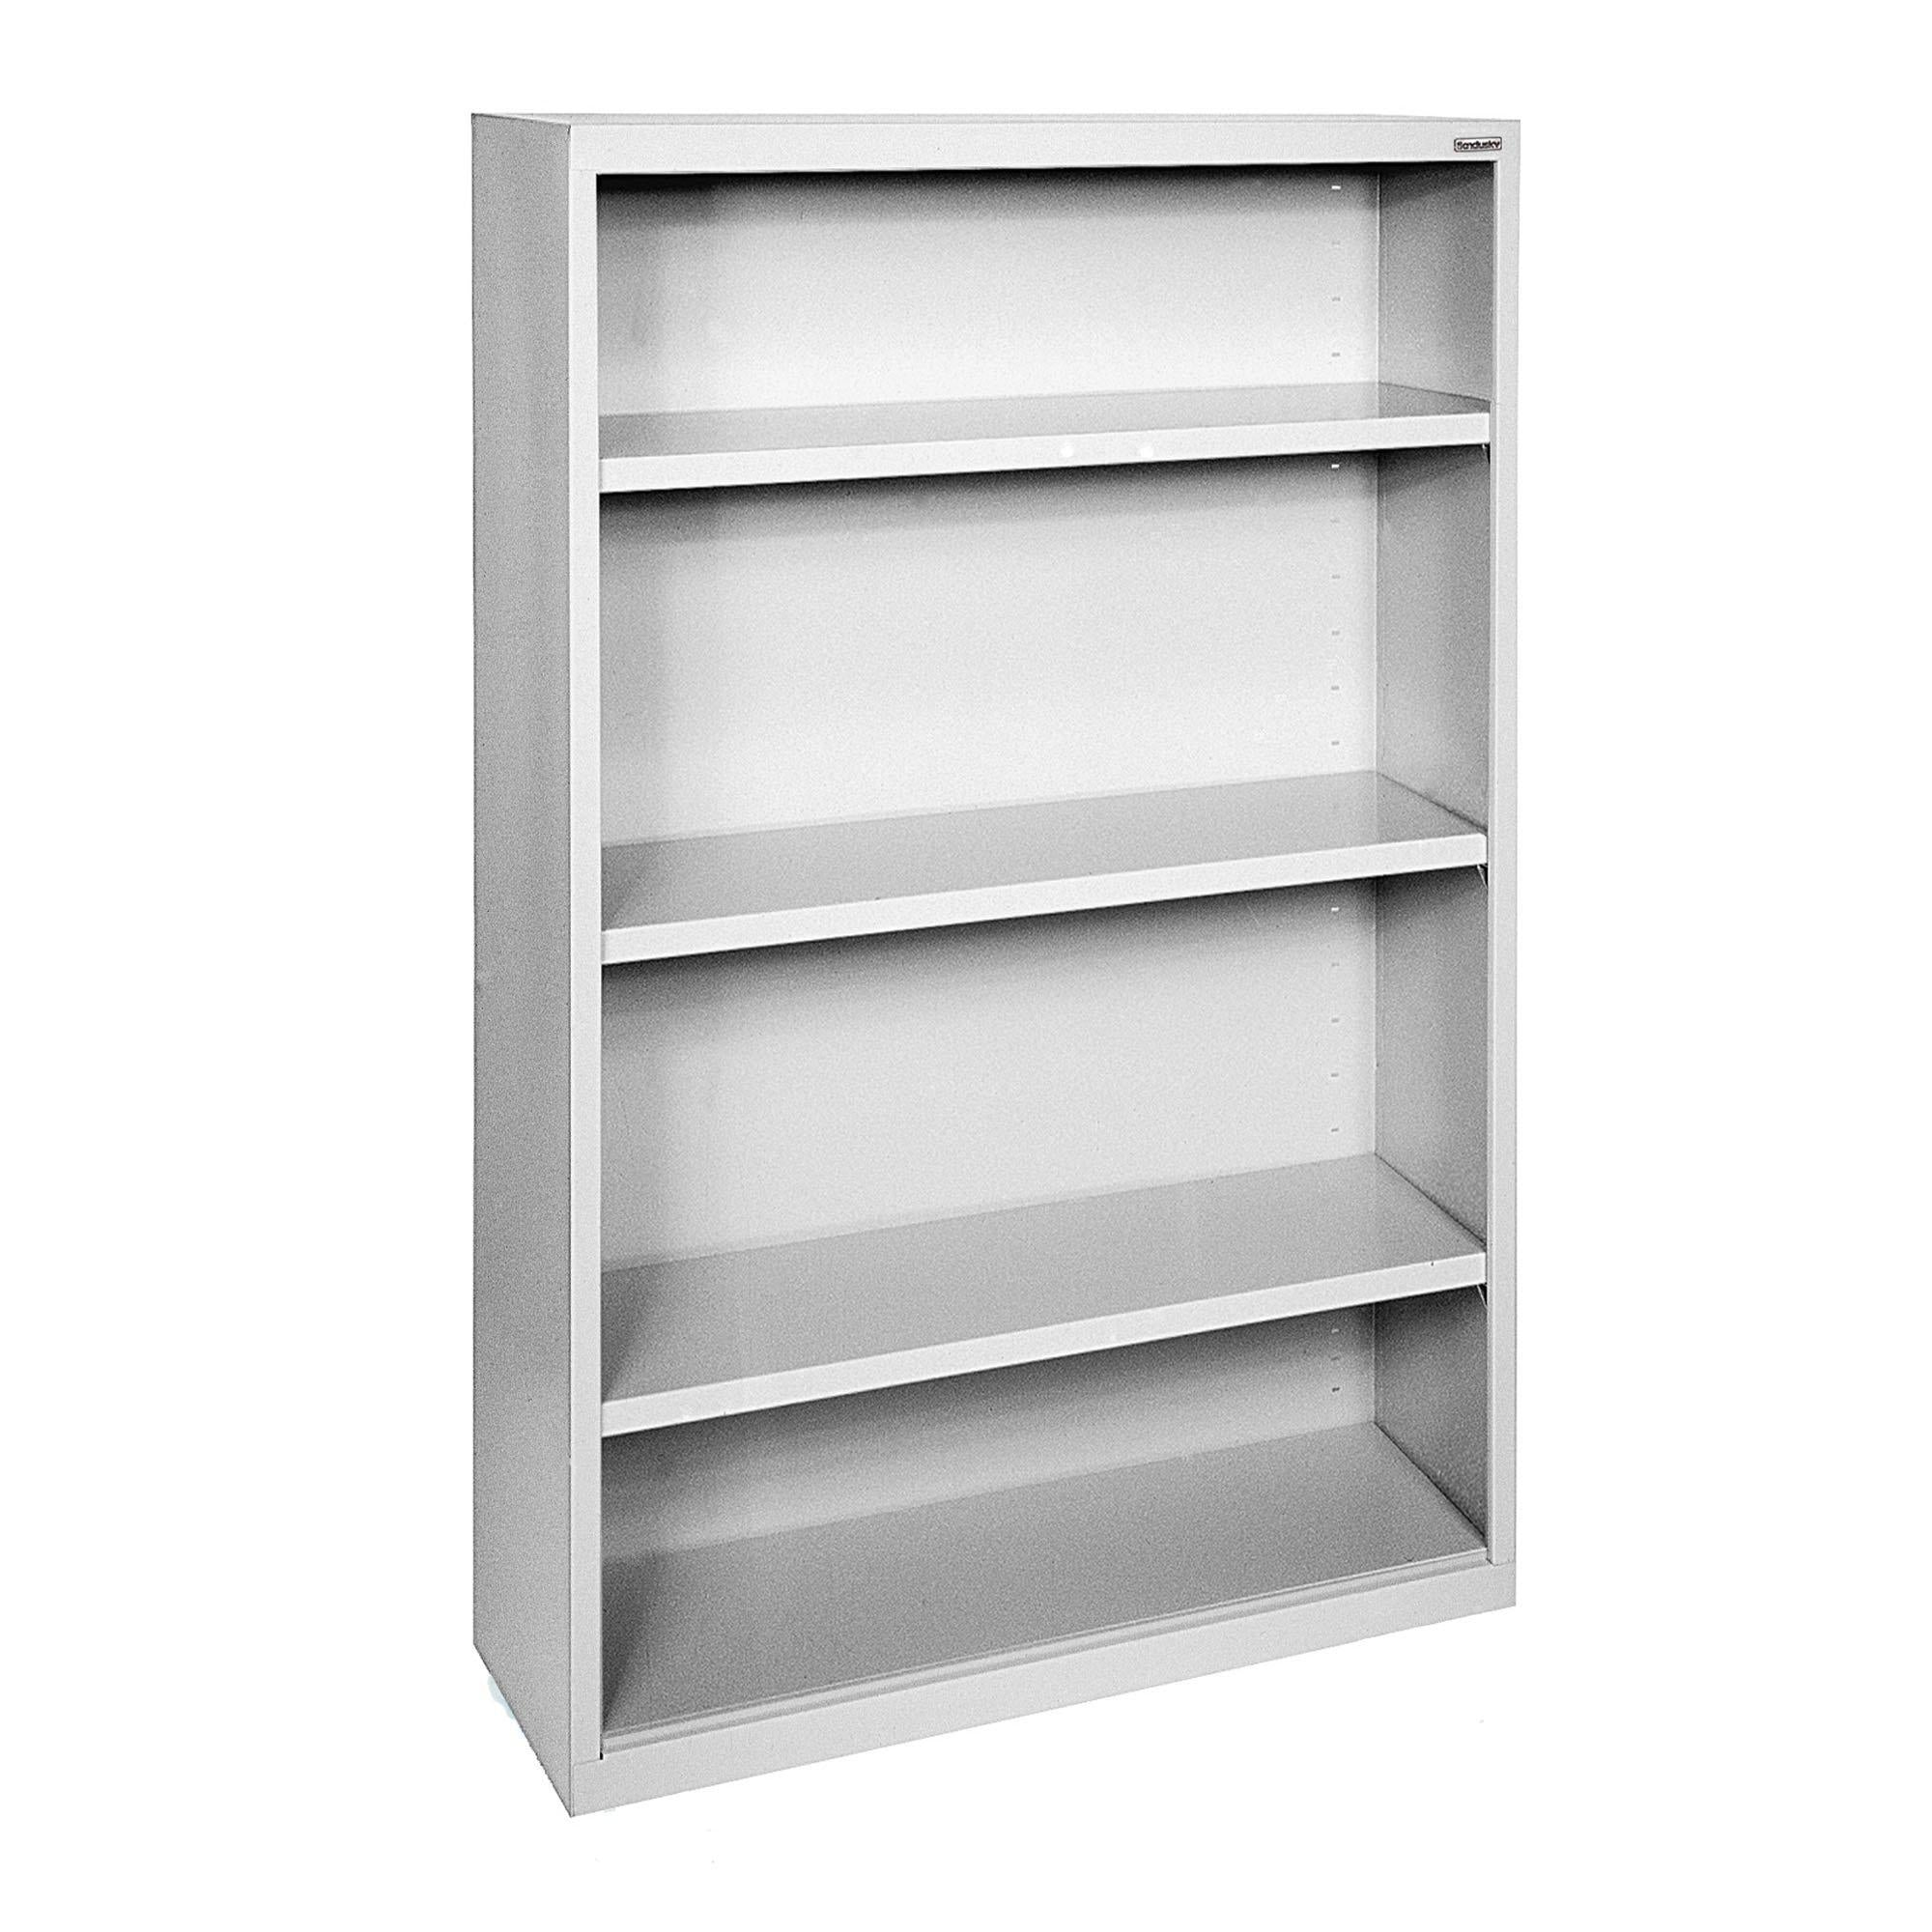 Elite Series Welded Steel Bookcase, 3 Shelves and Bottom Shelf, 34 x 12 x 52, Dove Gray